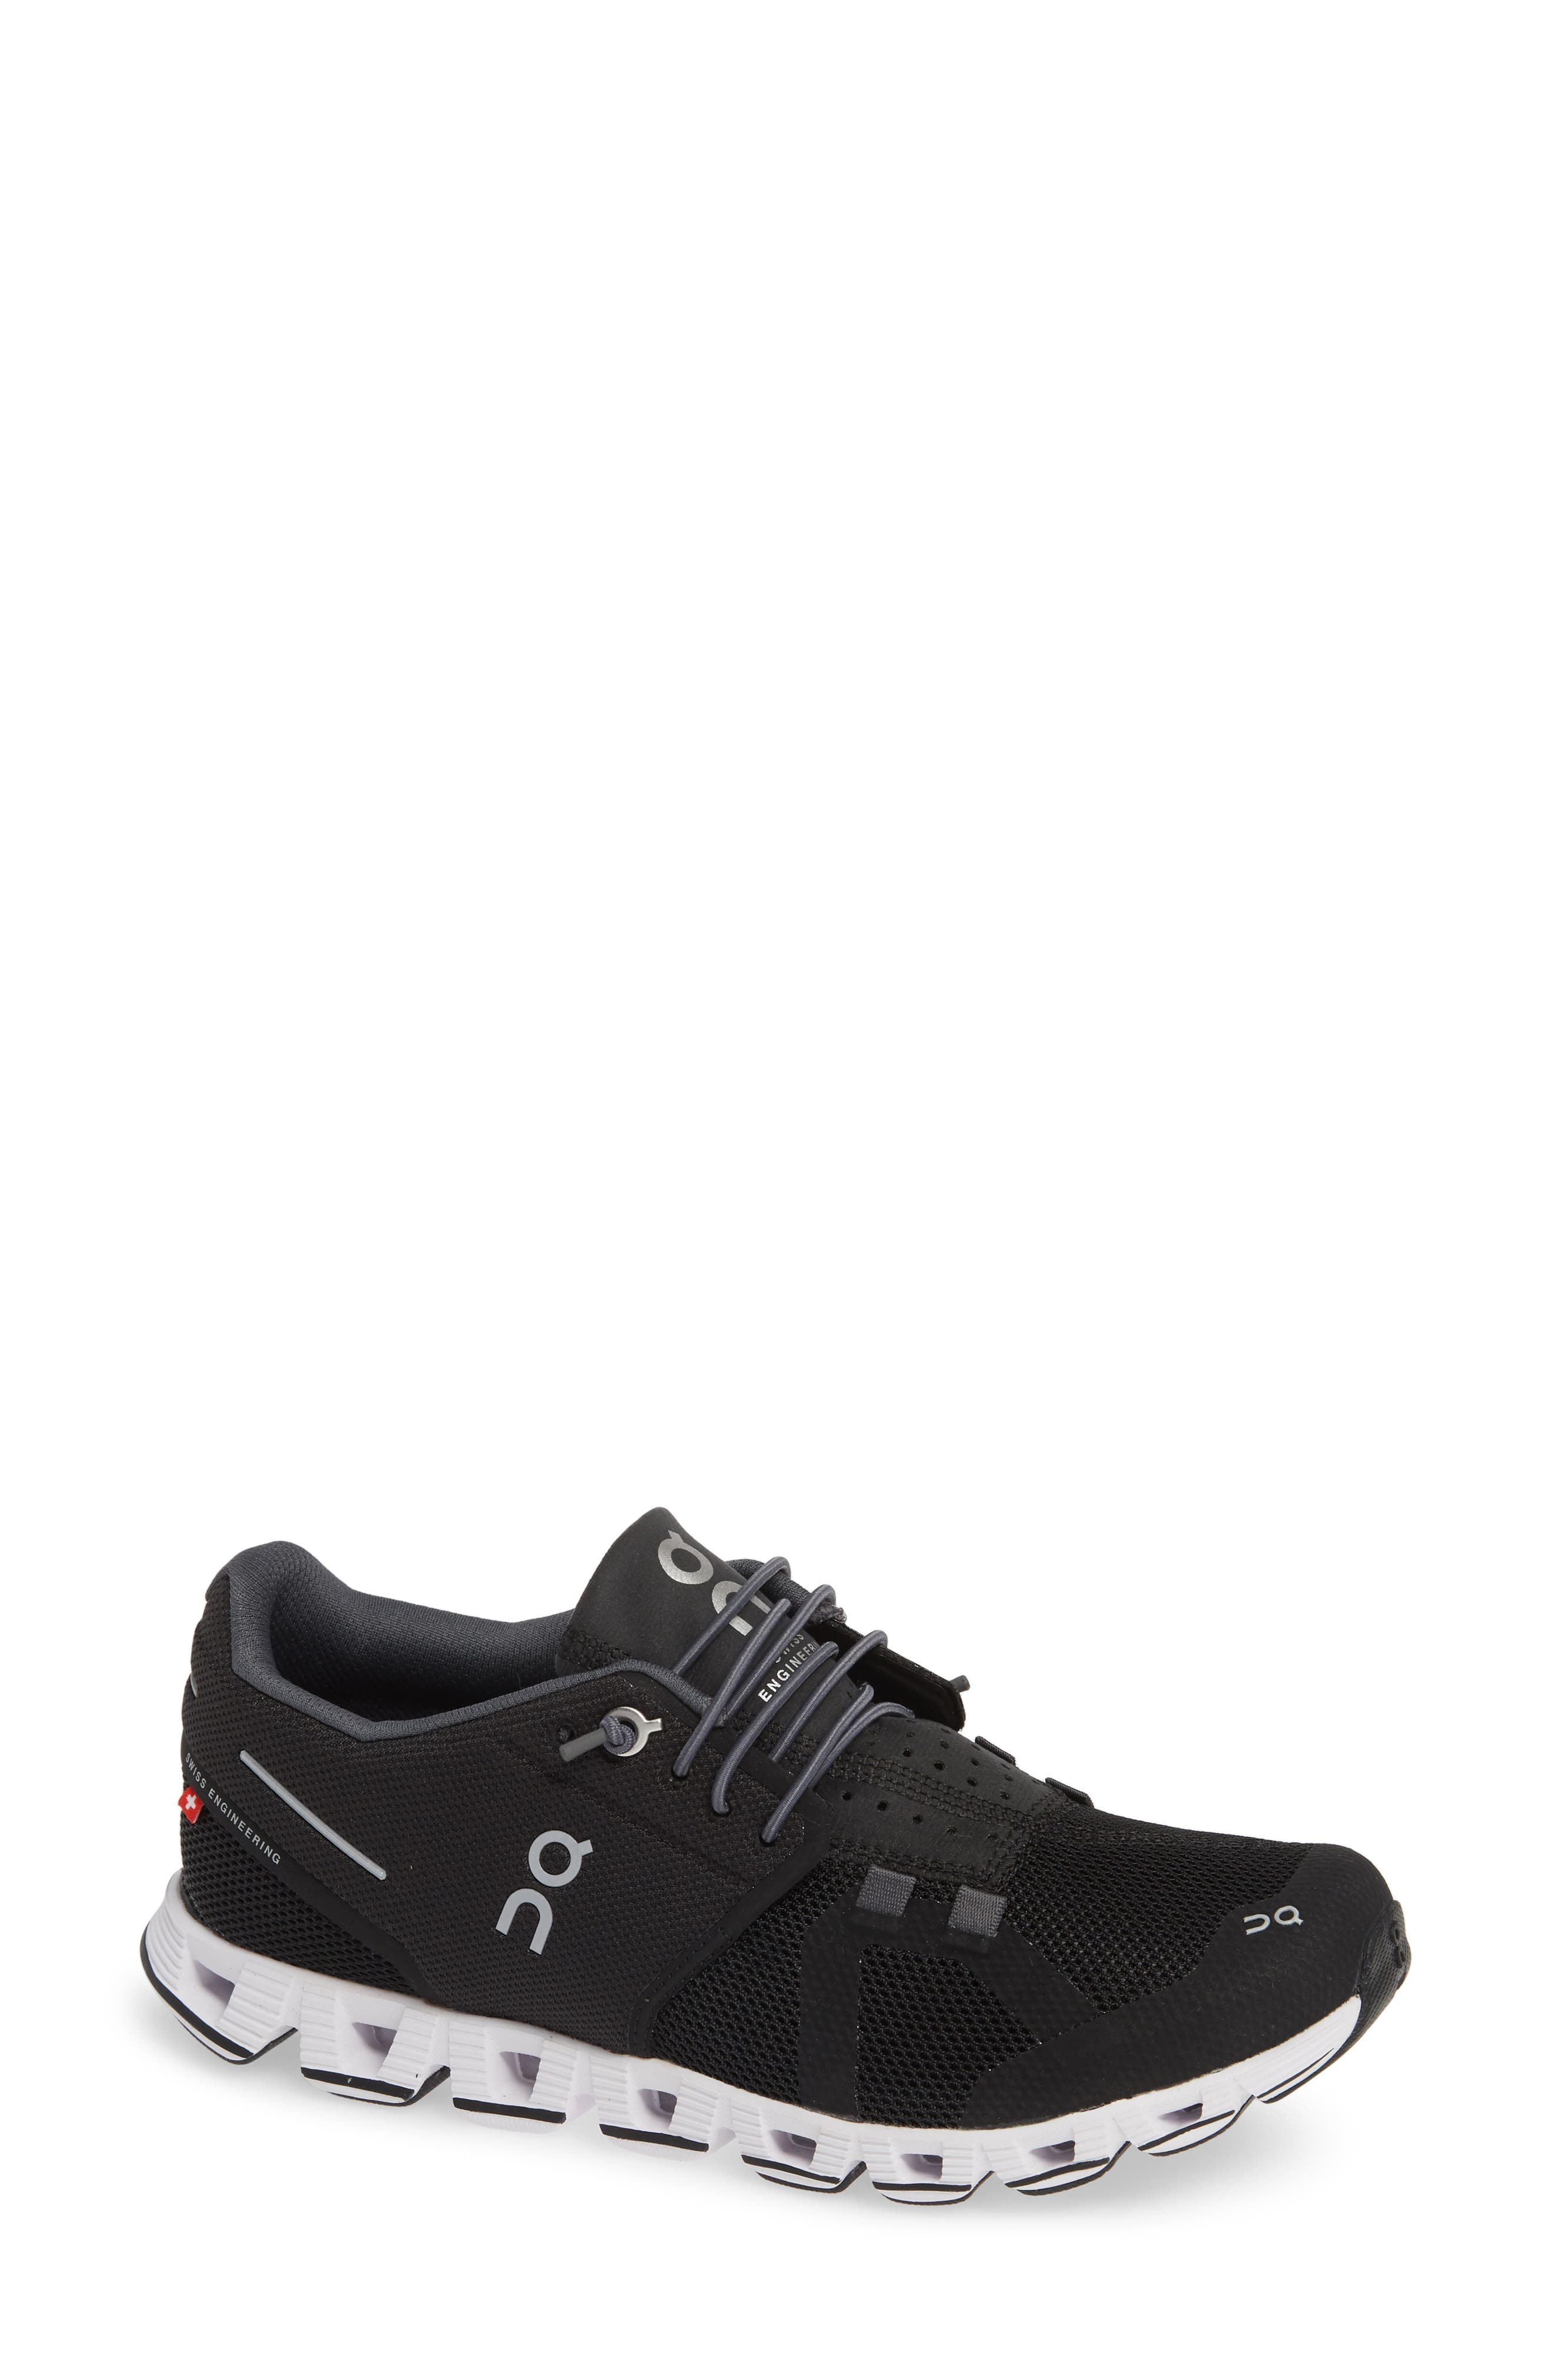 ON RUNNING Cloud Running Shoe, Main, color, BLACK/ WHITE